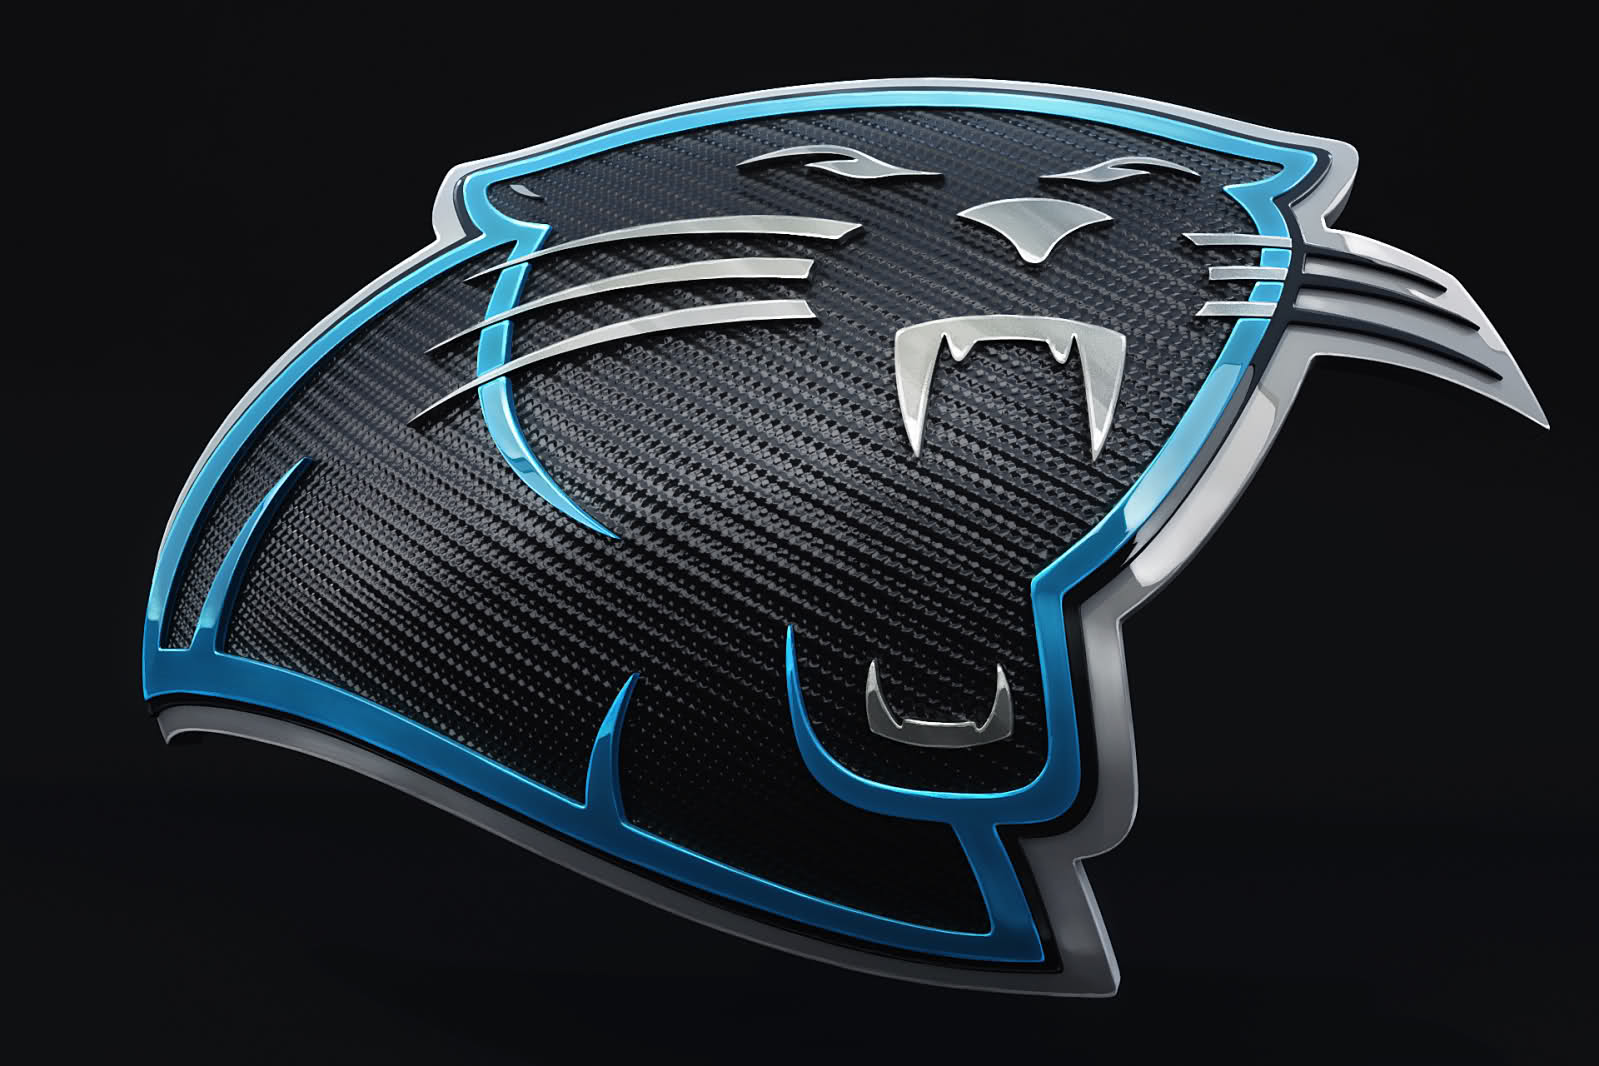 Panthers Carbon Fiber Wallpaper for Phones and Tablets 1599x1066